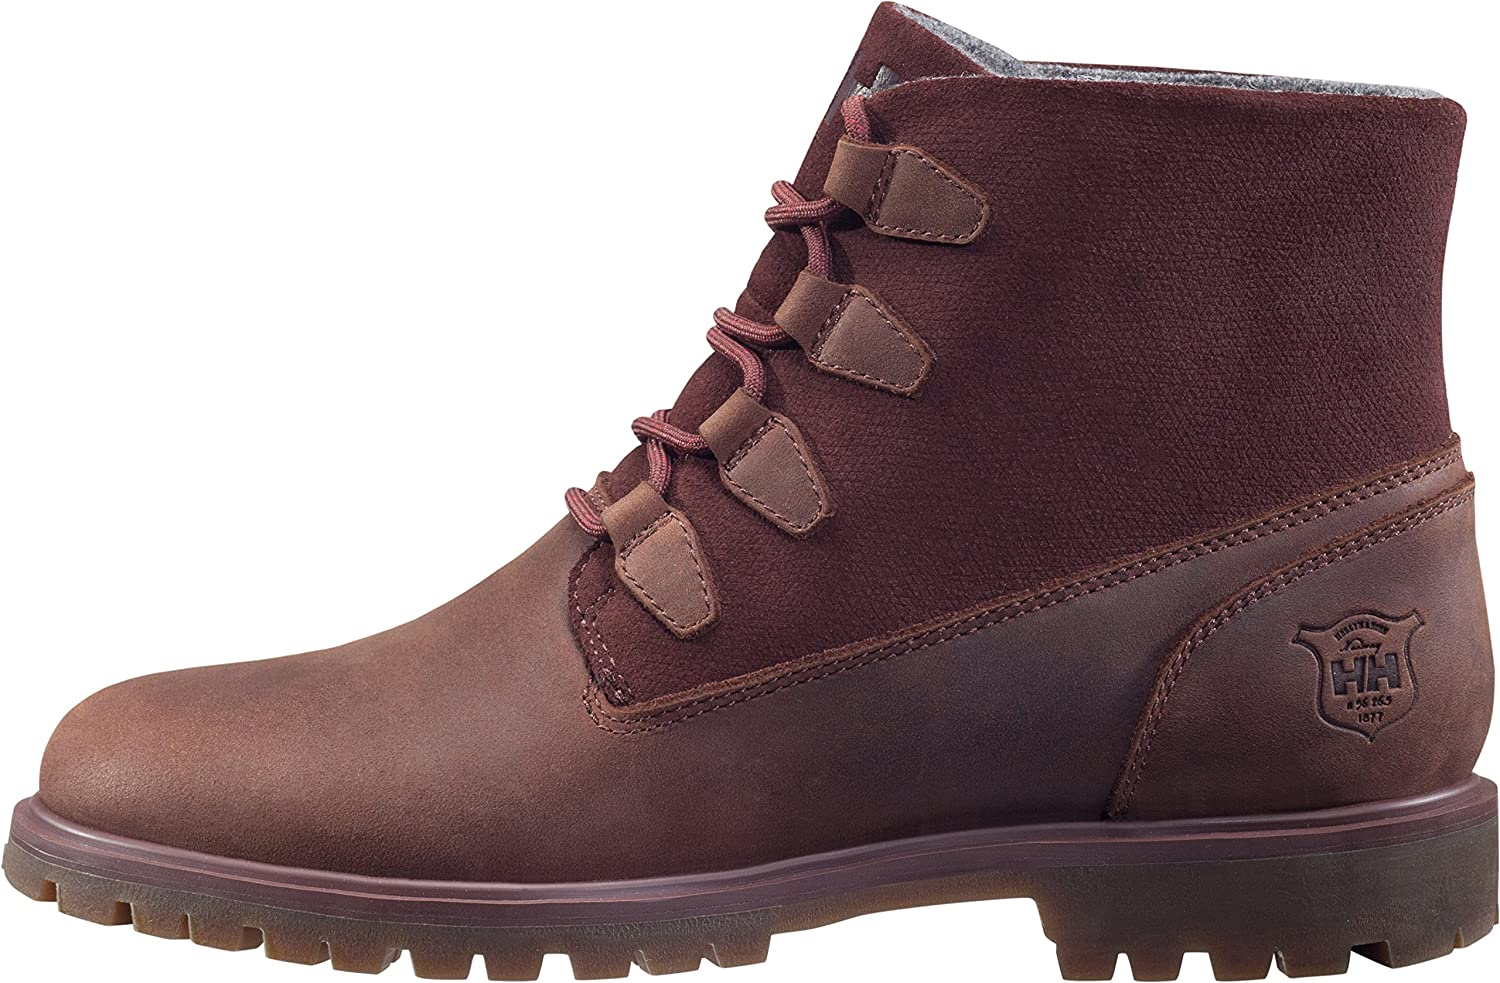 Helly Hansen Women's Cordova Snow Boot, Black/Ebony/Sperry Gum, 8 M US B01N80OEM5 6.5 B(M) US|Brunette/Red/Brown/Spe